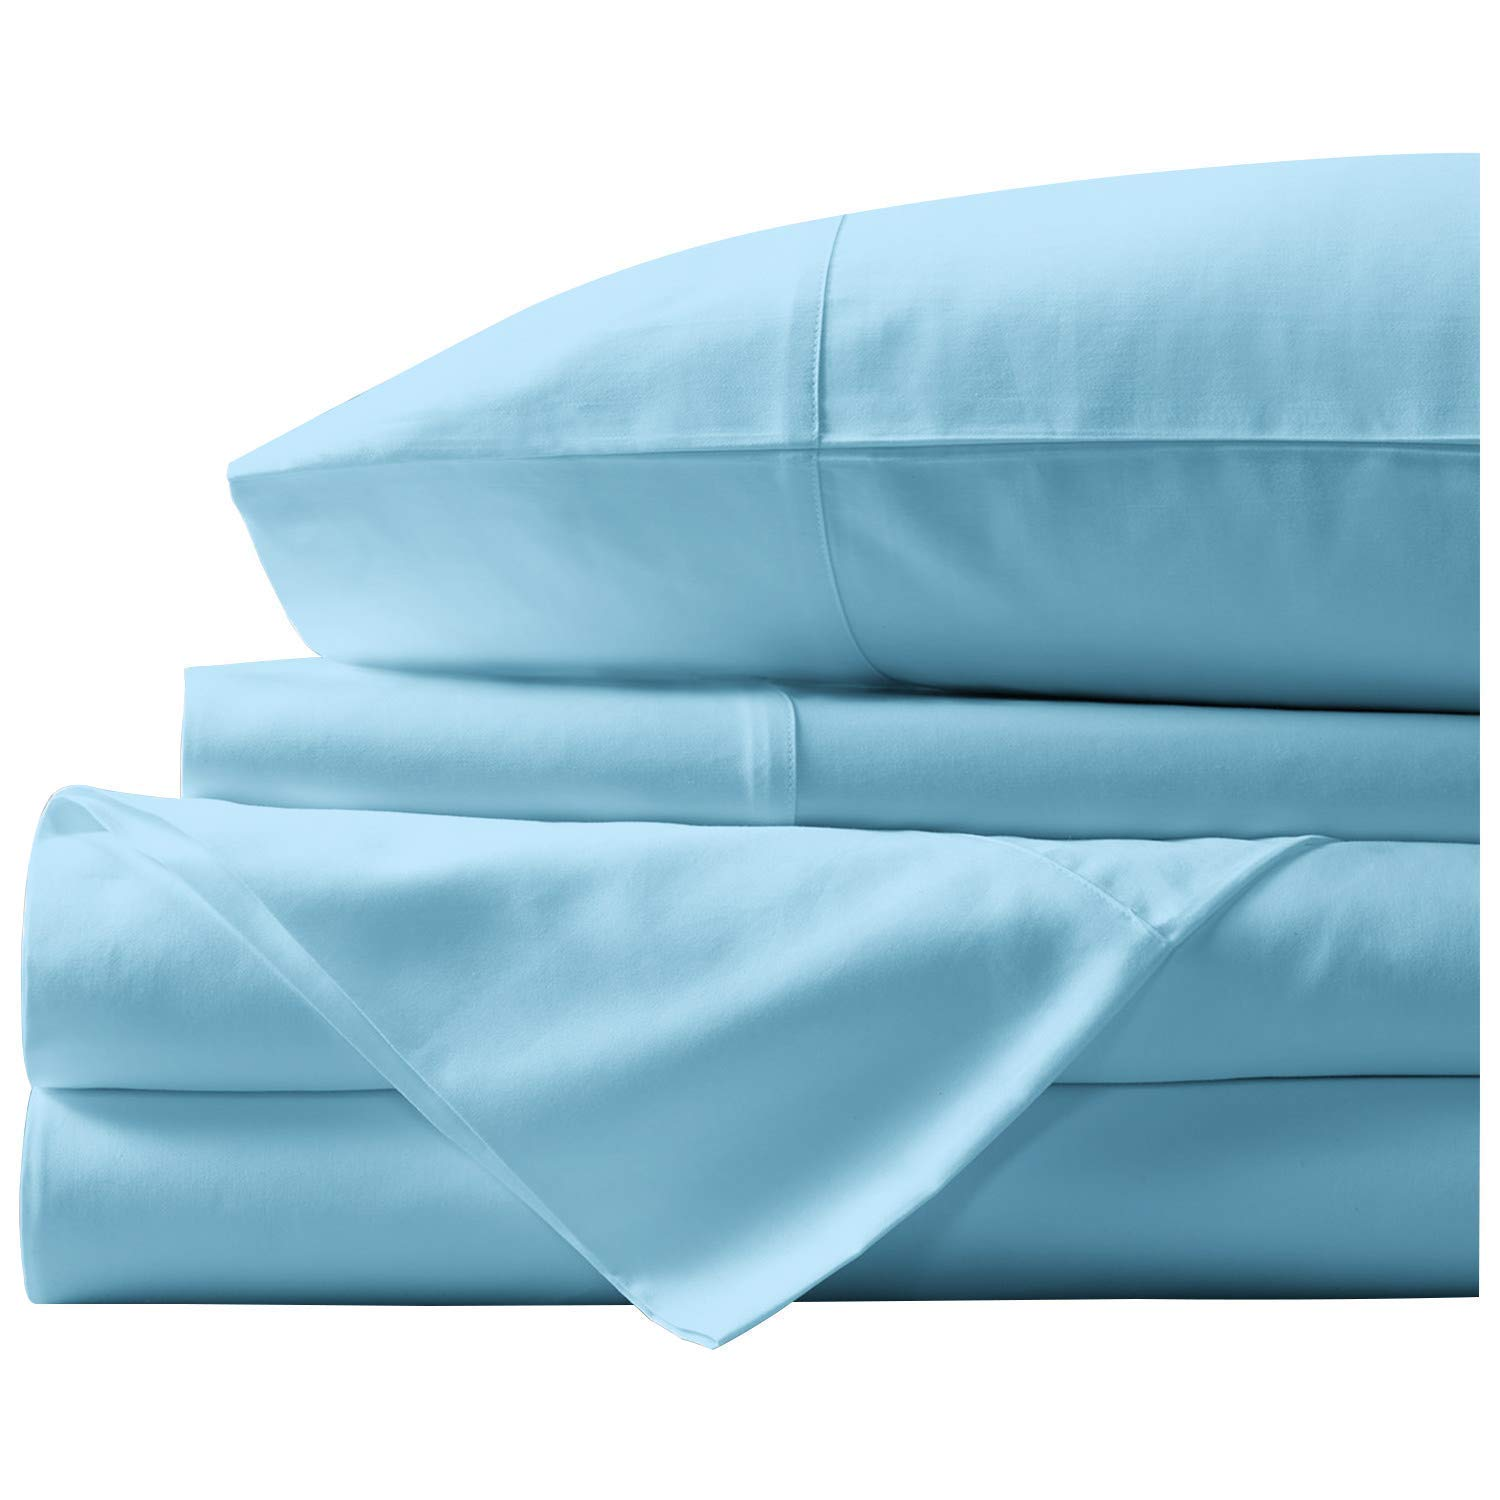 "Paramount Dyeing Co. 100% Egyptian Cotton 4-Pc Sheet Set 1000 TC Premium Quality Luxurious Feel Italian Finish Bedding Set Fits Mattress Up to 18"" Deep Pocket Twin Sky Blue"